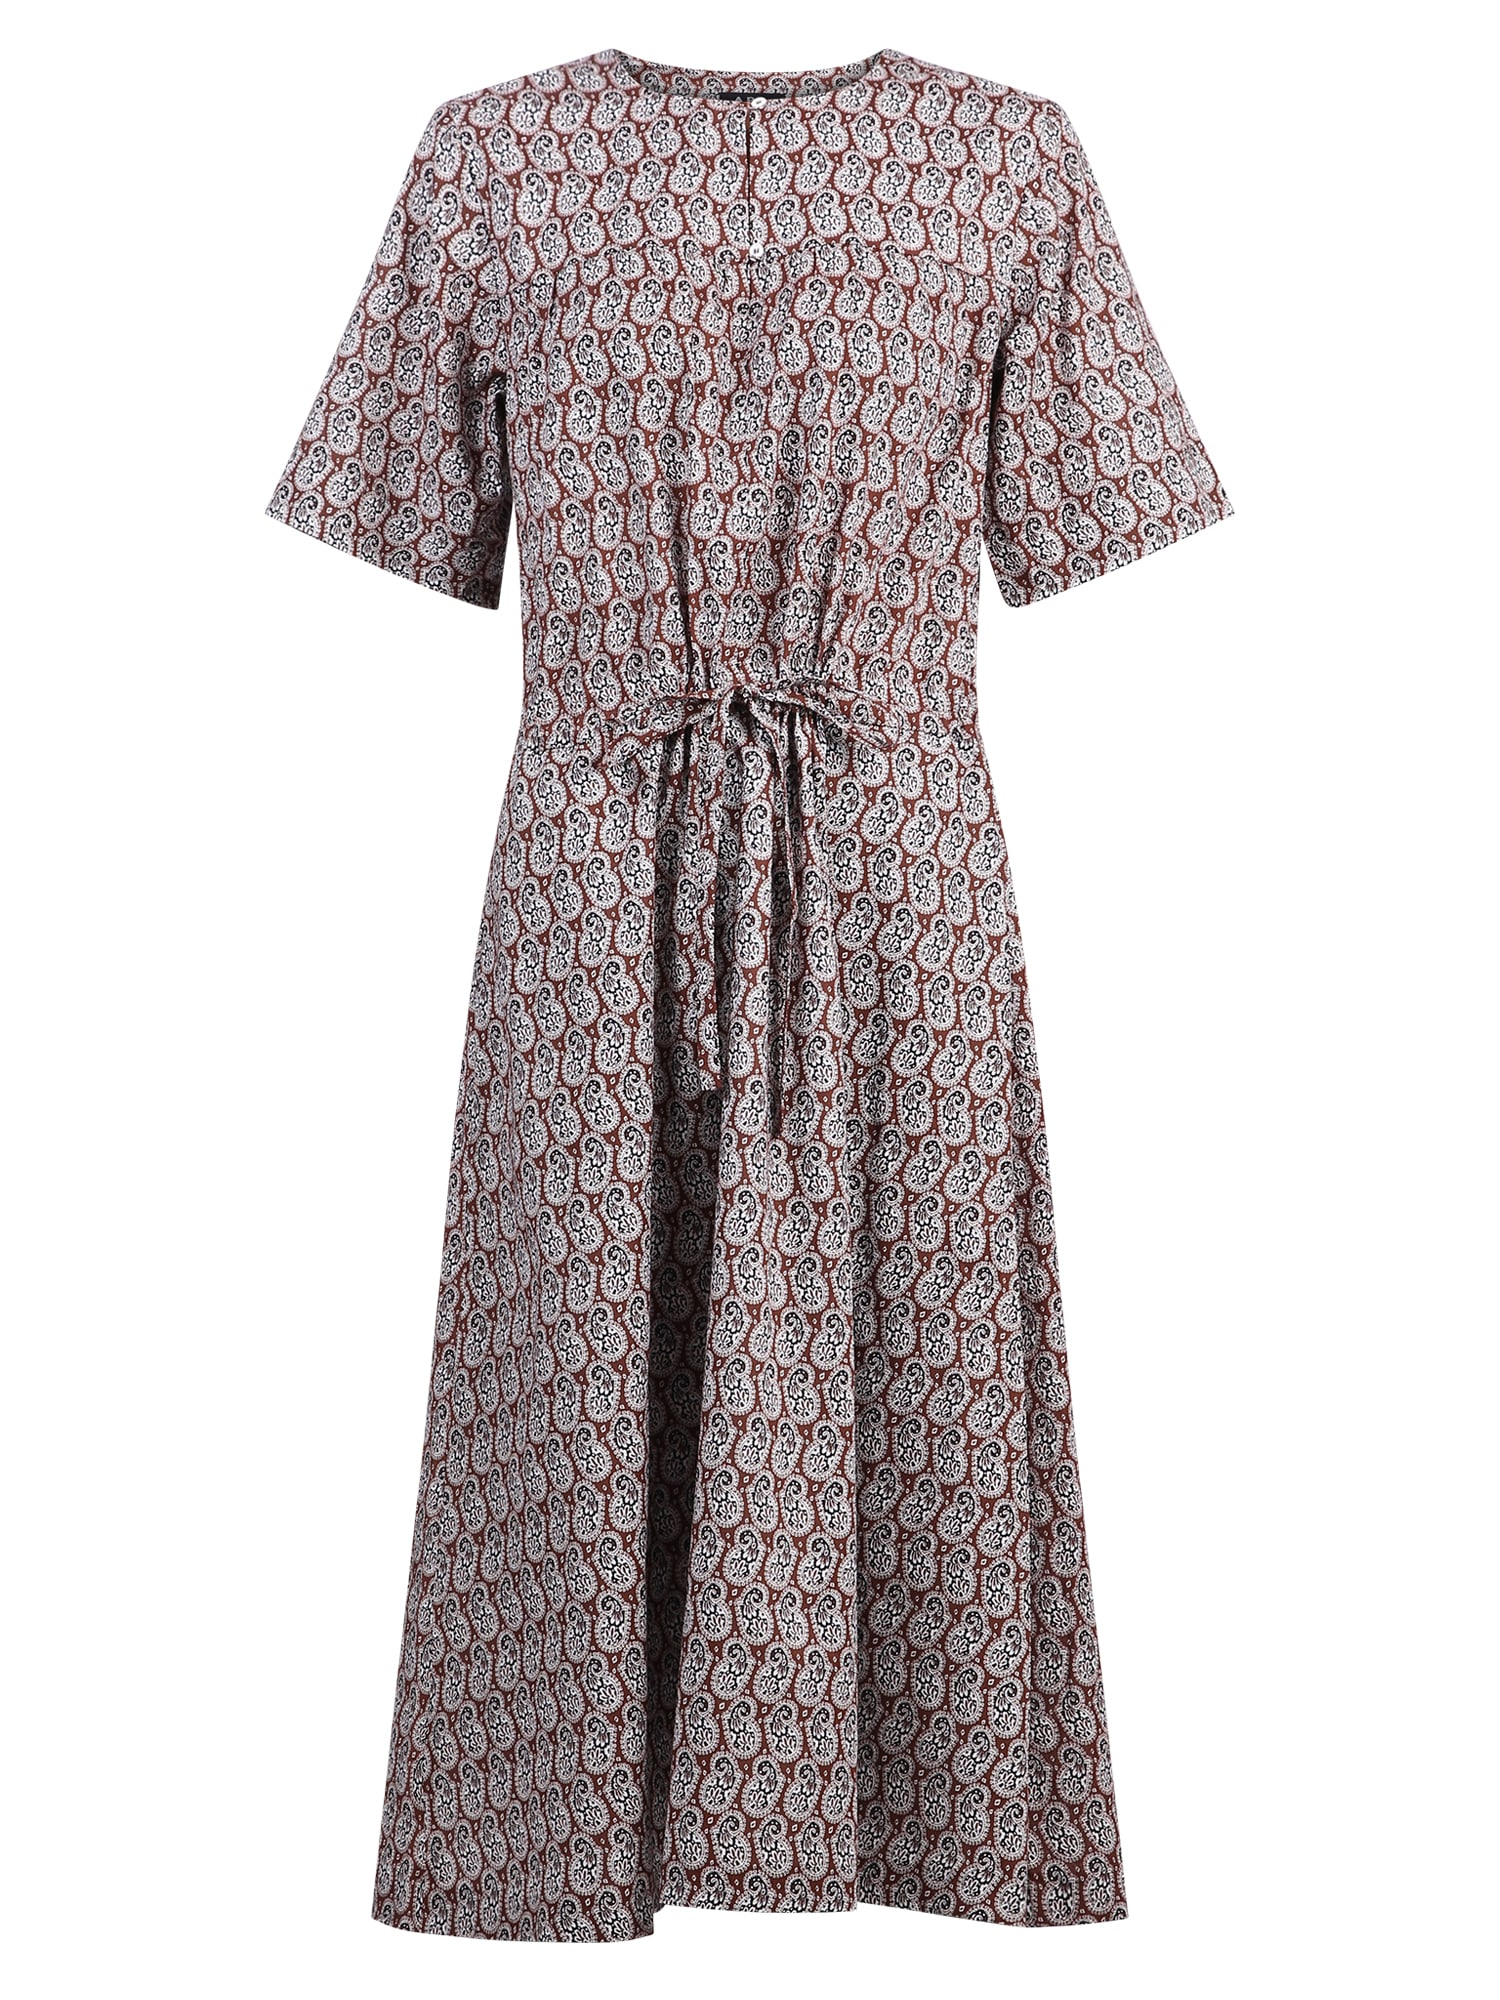 Buy A.P.C. Paisley-print Dress online, shop A.P.C. with free shipping